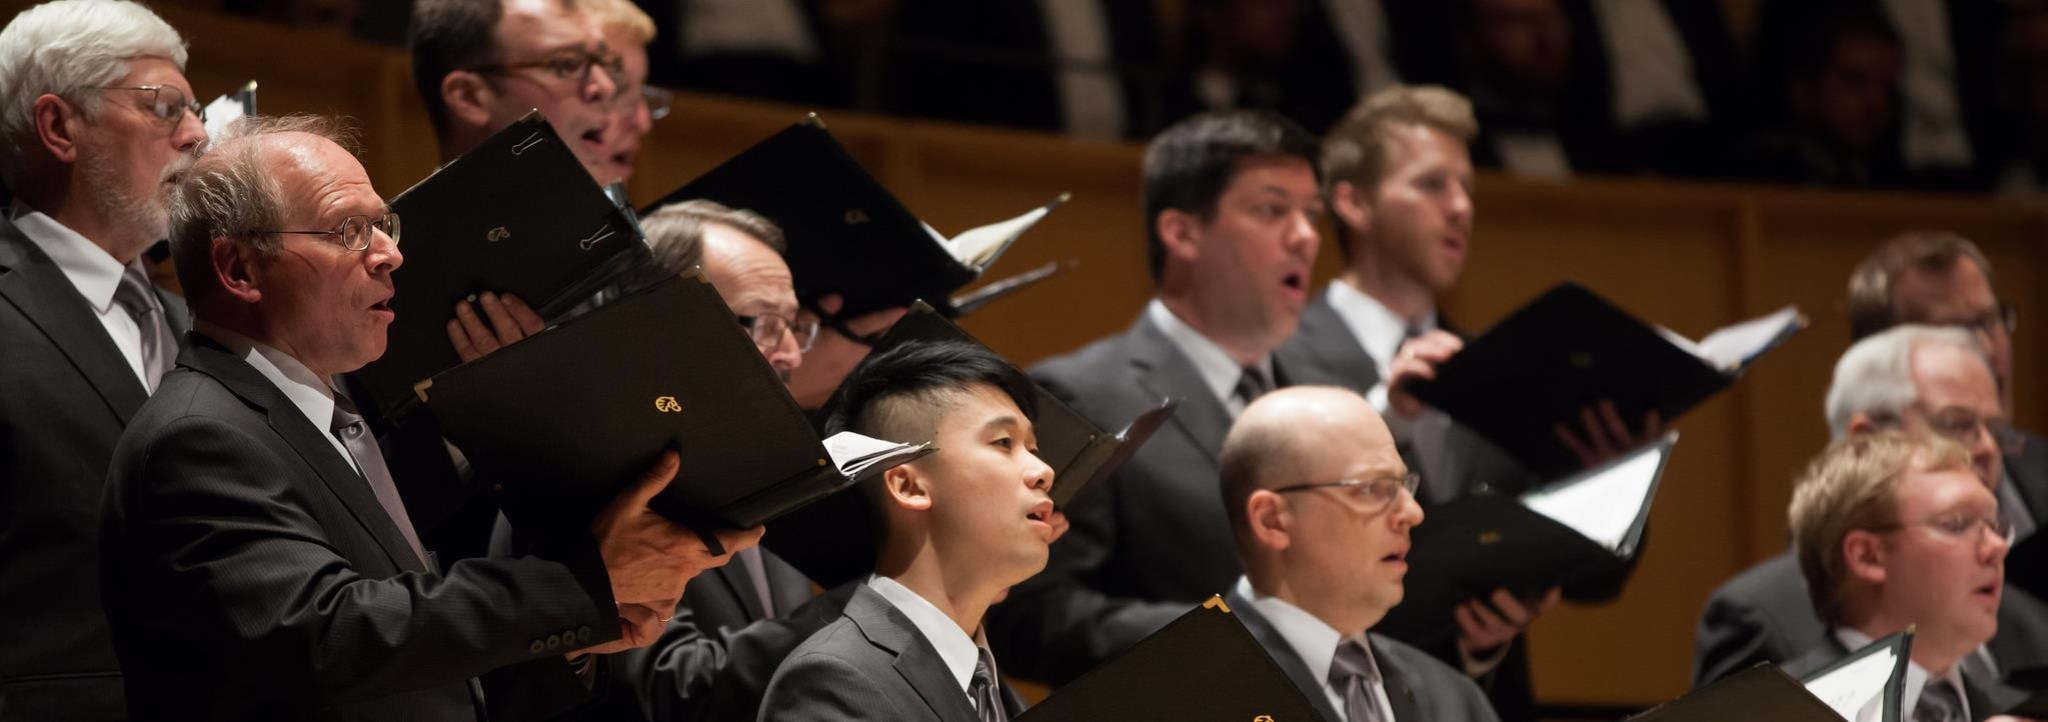 Chor Leoni men's choir celebrates Leonard Cohen on